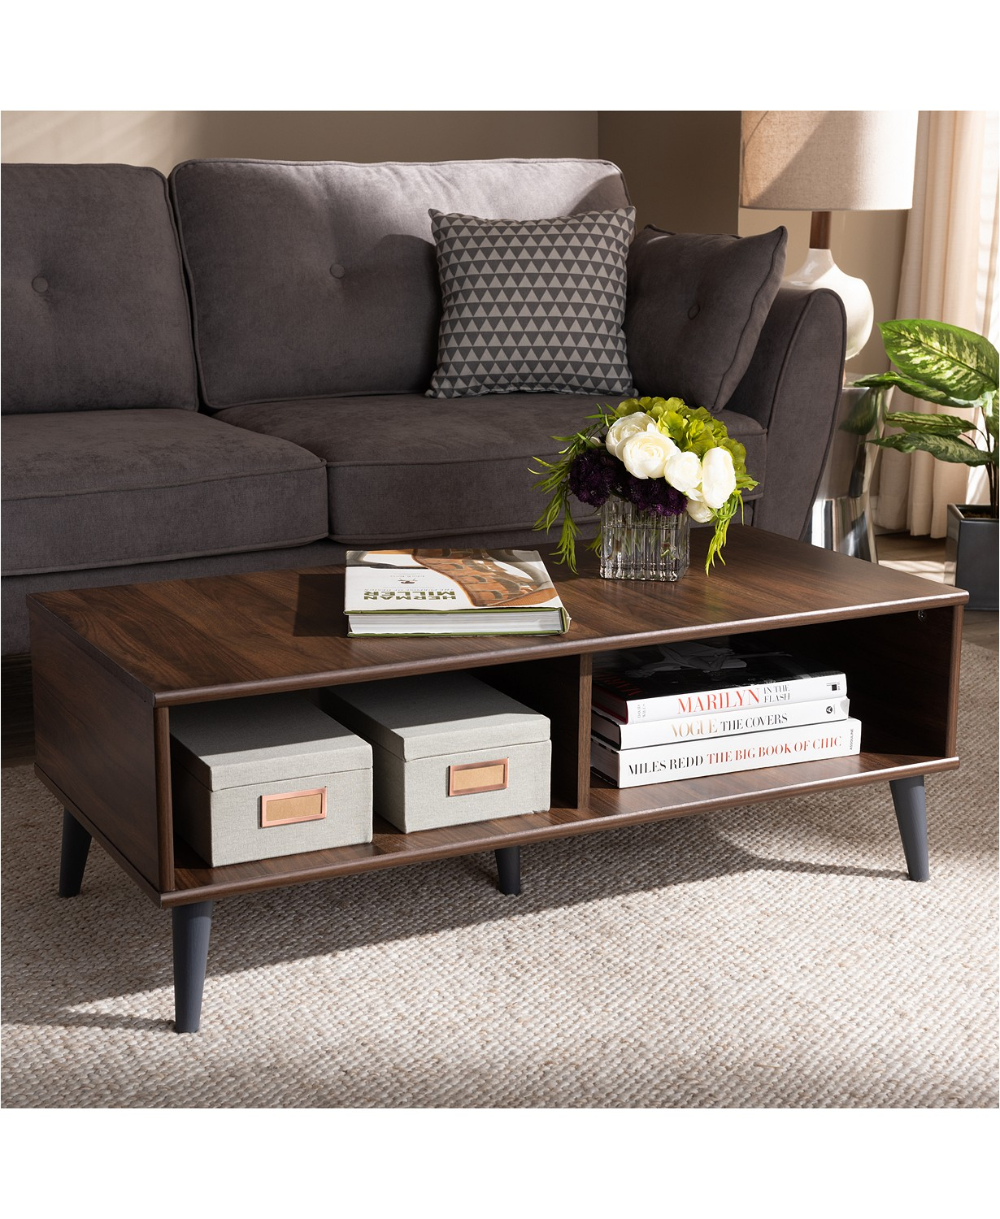 Furniture Thea Coffee Table Reviews Furniture Macy S In 2021 Living Room Table Sets Mid Century Modern Coffee Table Coffee Table [ 1219 x 1000 Pixel ]